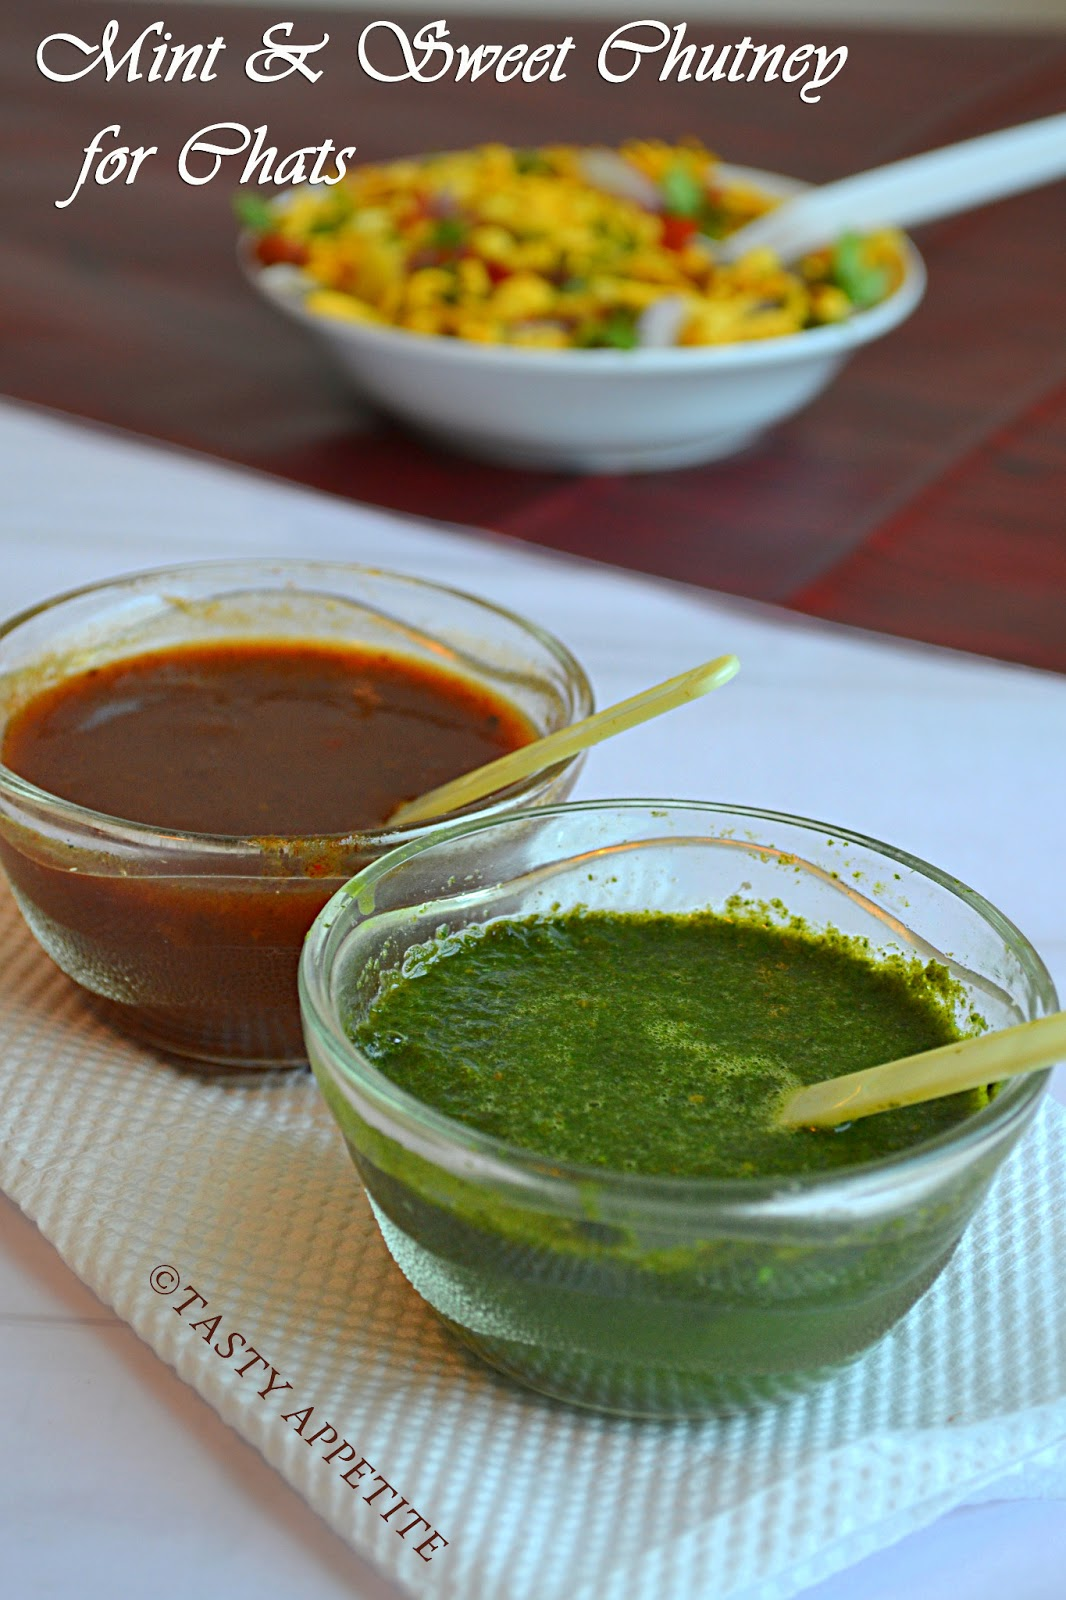 how to make green chutney sweet chutney for chats. Black Bedroom Furniture Sets. Home Design Ideas